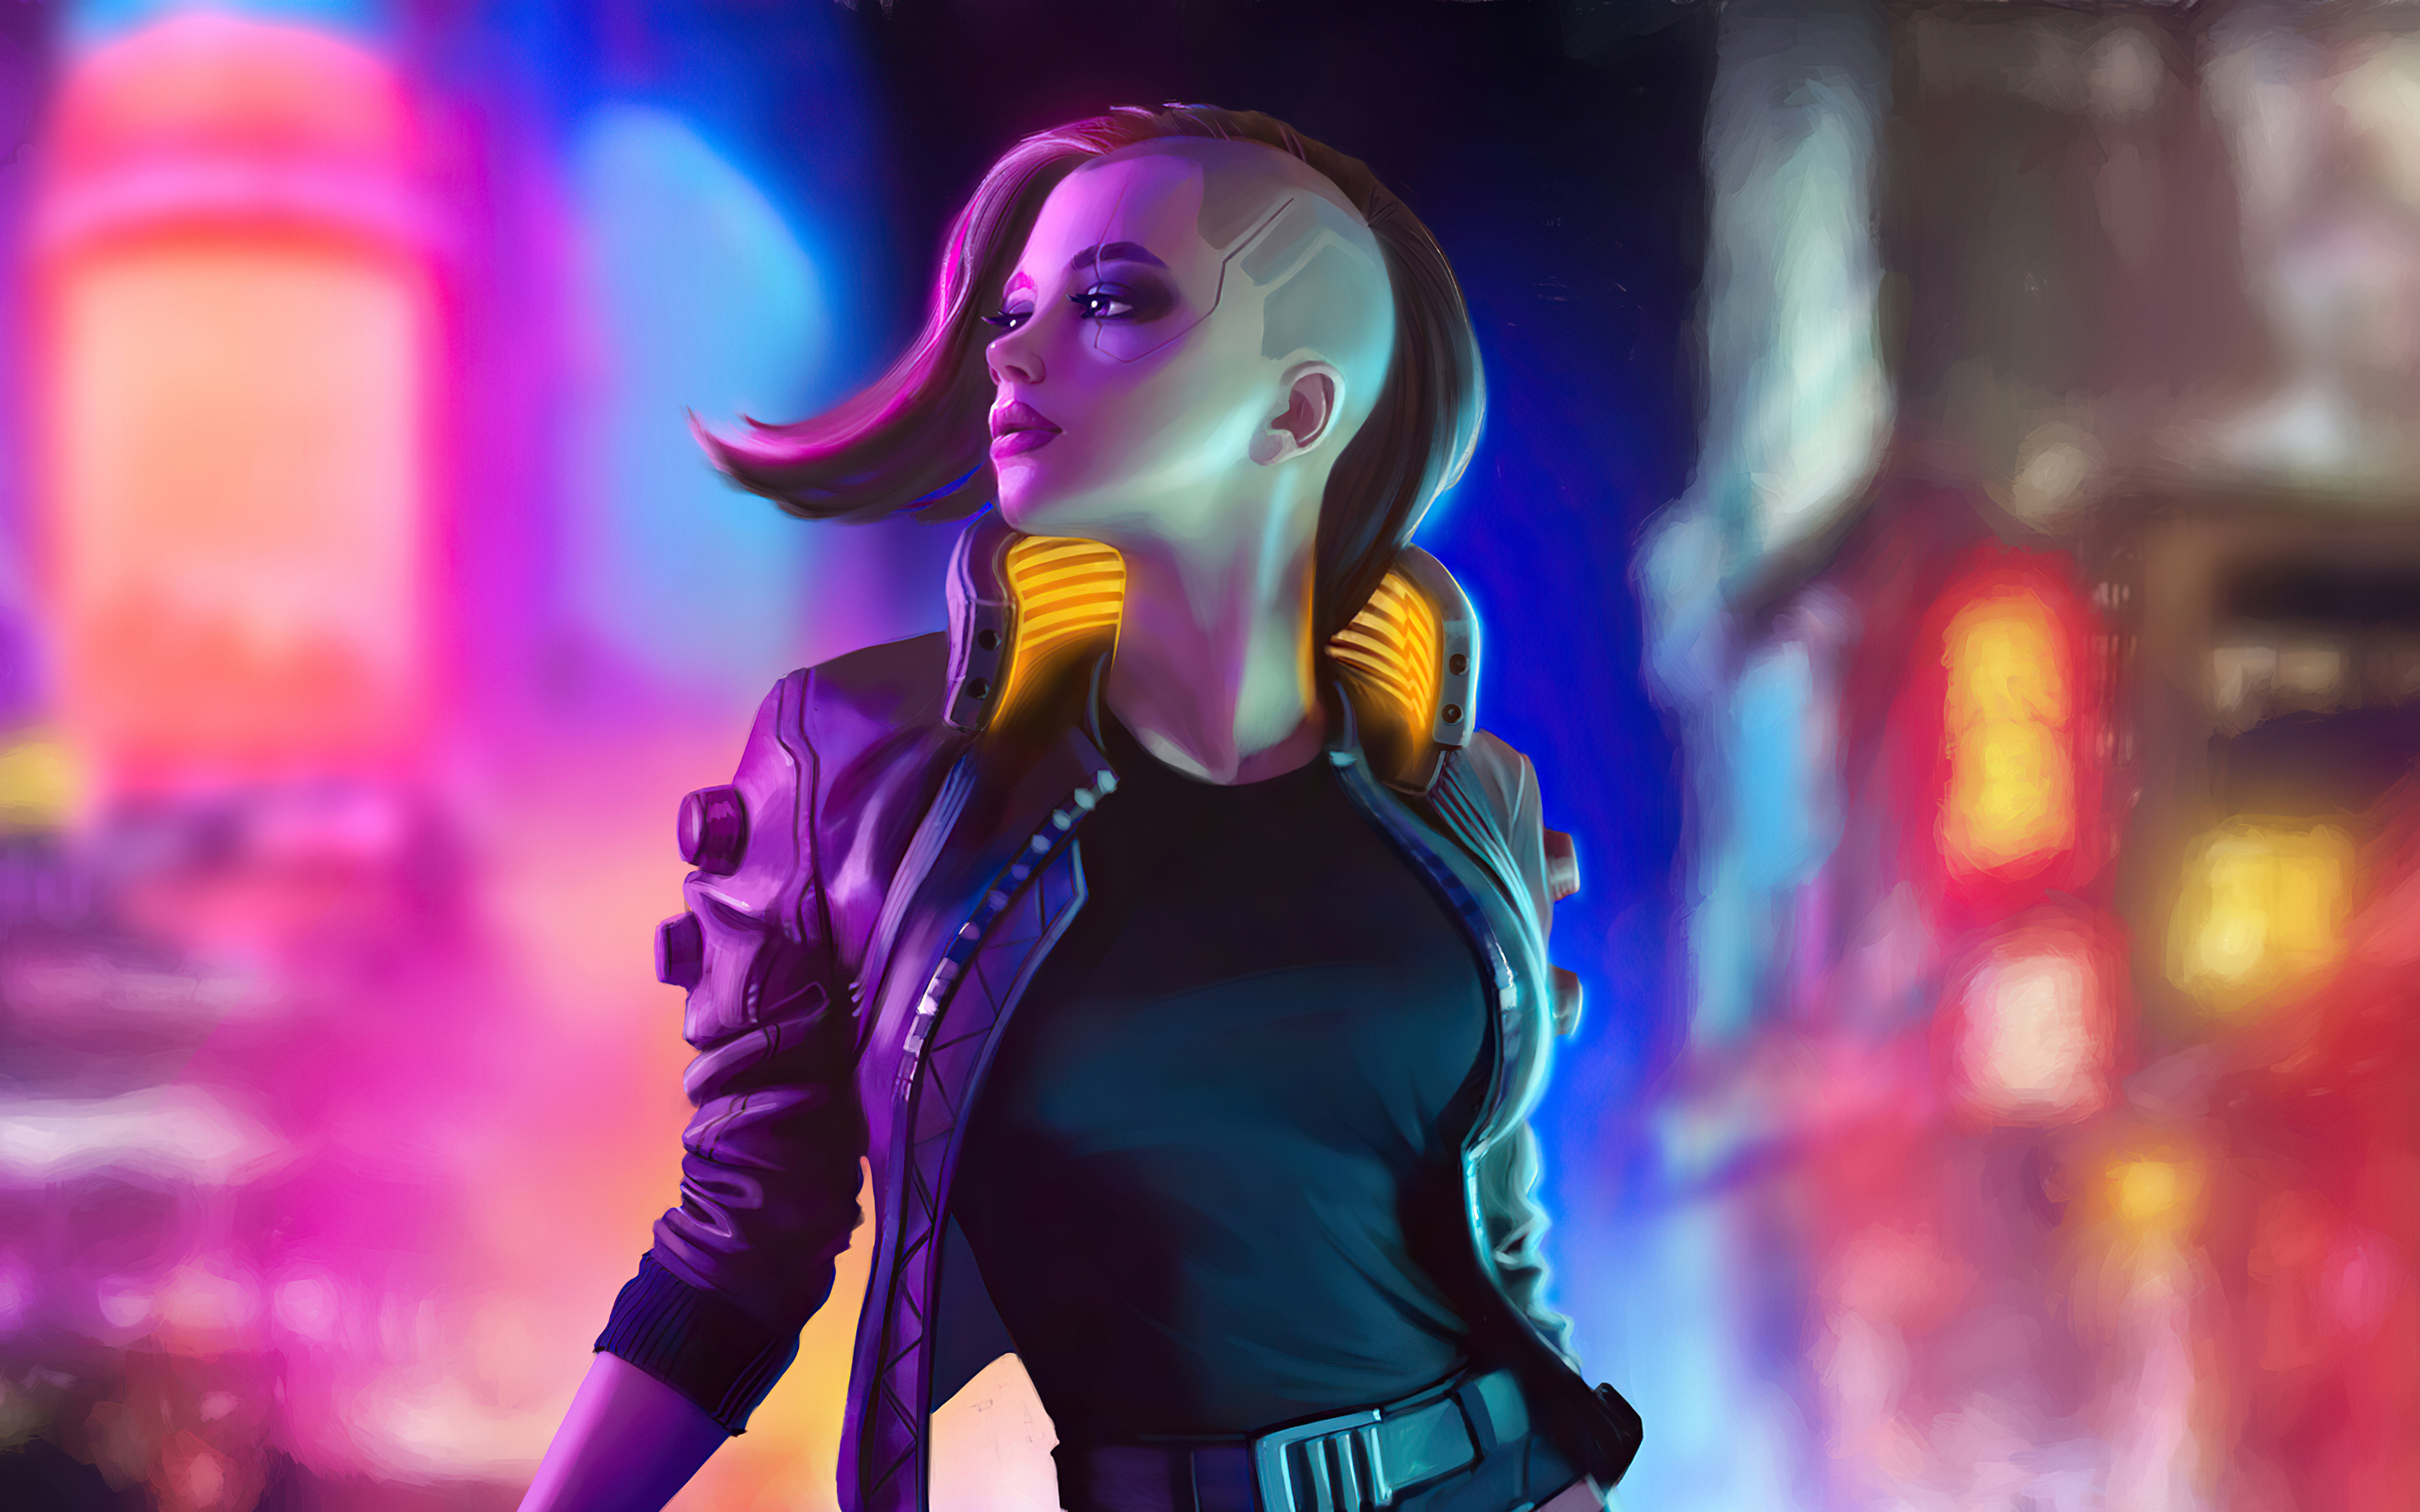 cyberpunk-2077-girl-in-city-4k-m7.jpg